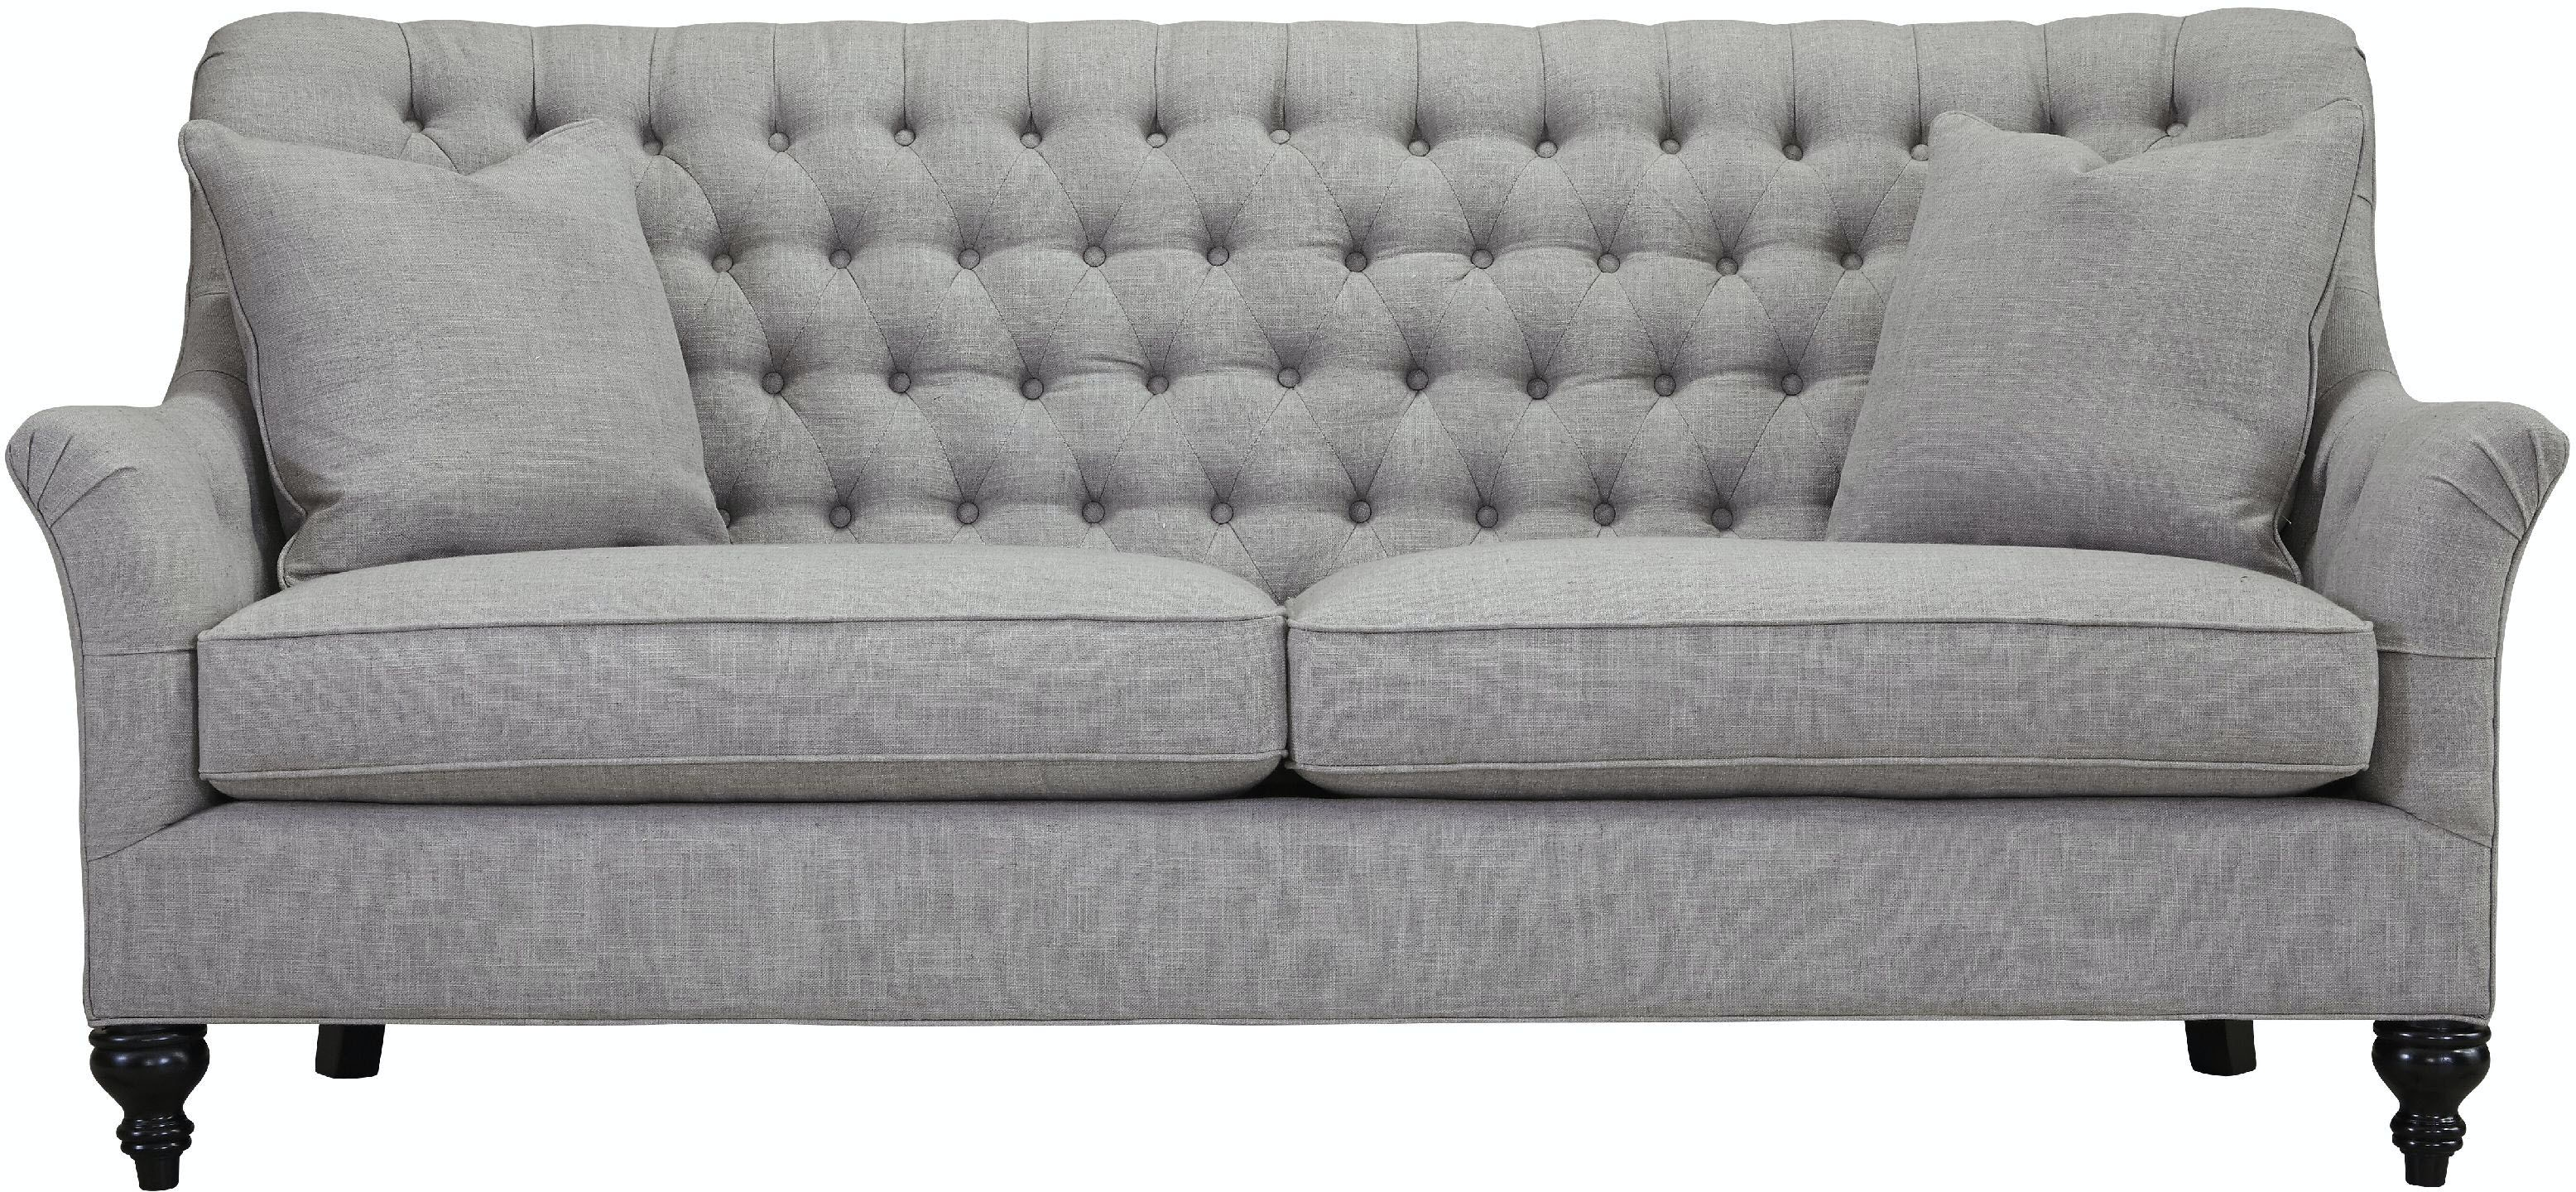 Southern Furniture Living Room Bonnie Sofa Whitley